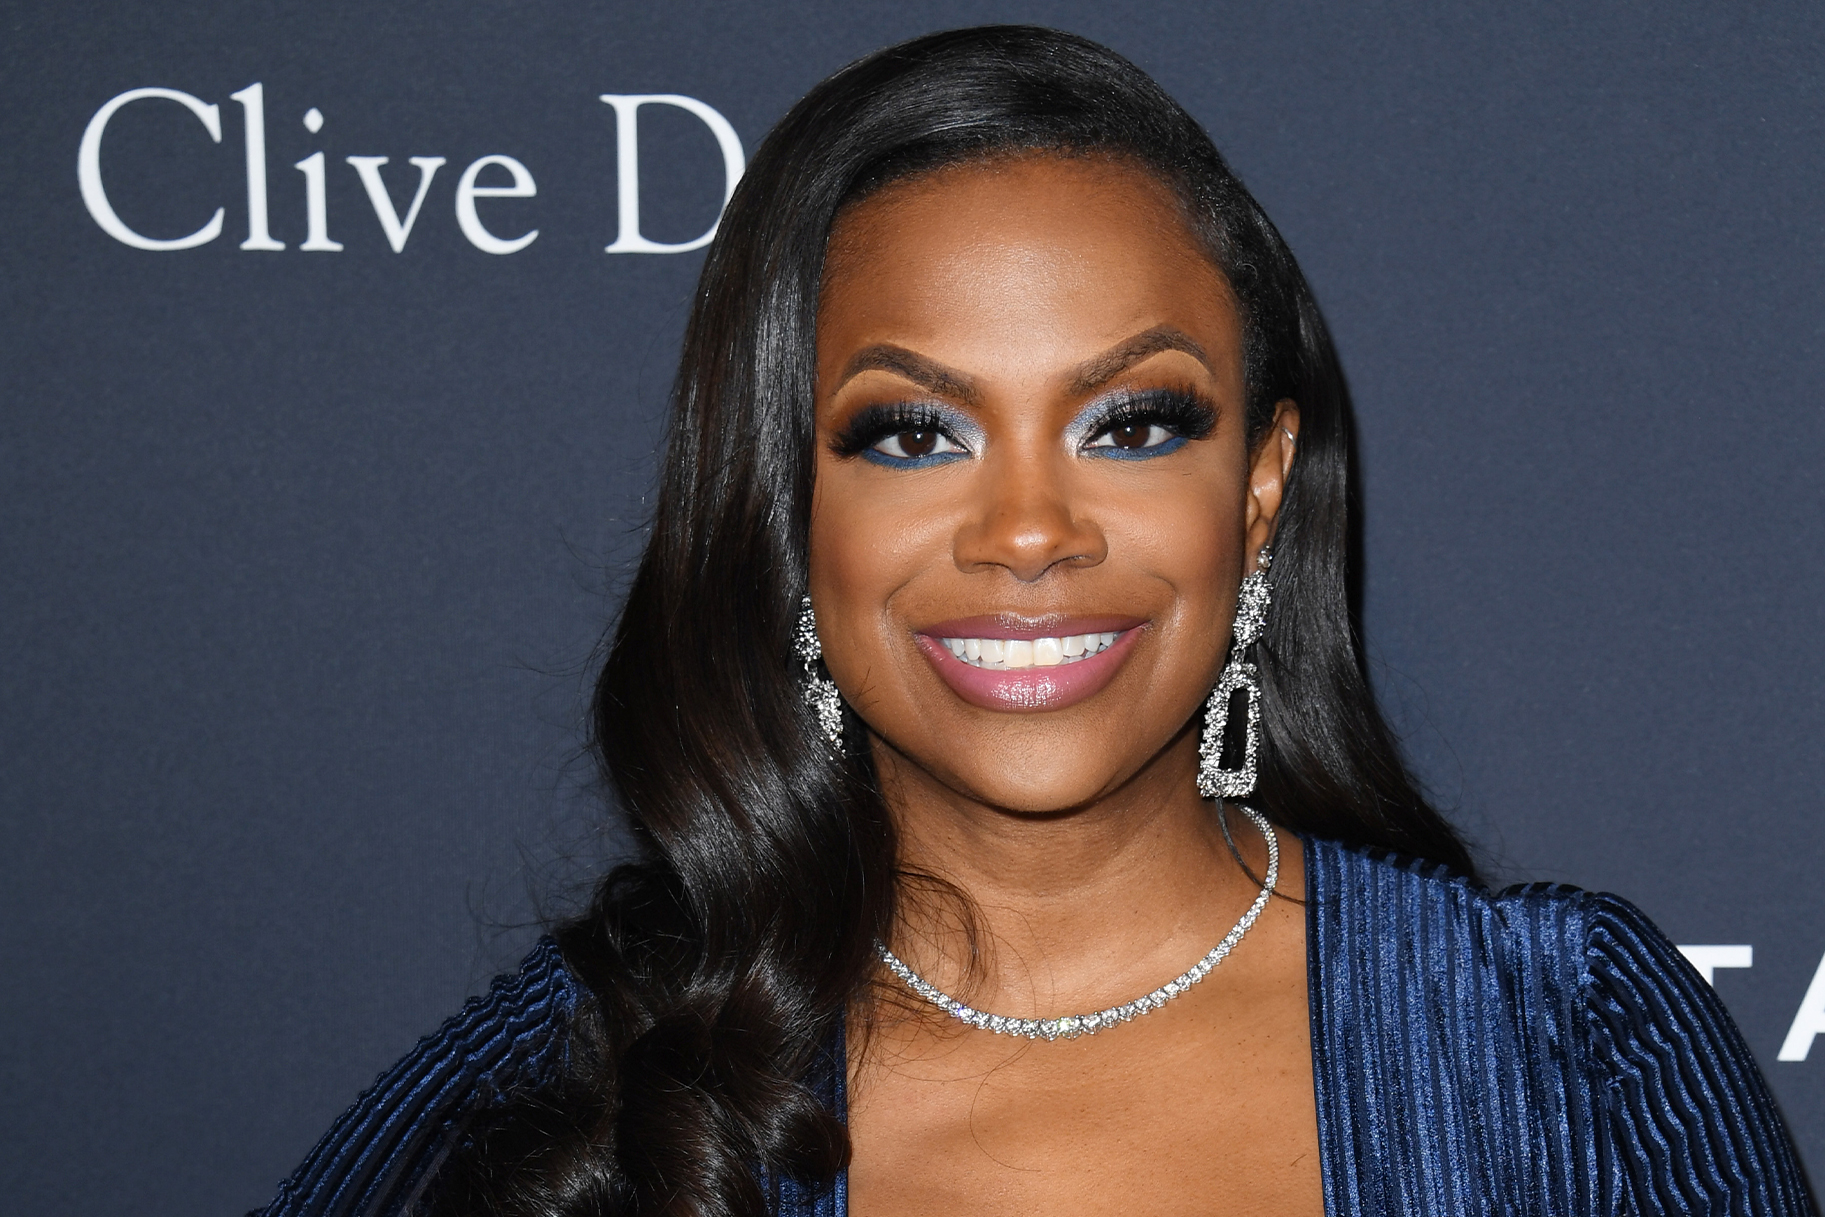 Kandi Burruss Has Fans Excited With This IG Post – Check Out What's It All About